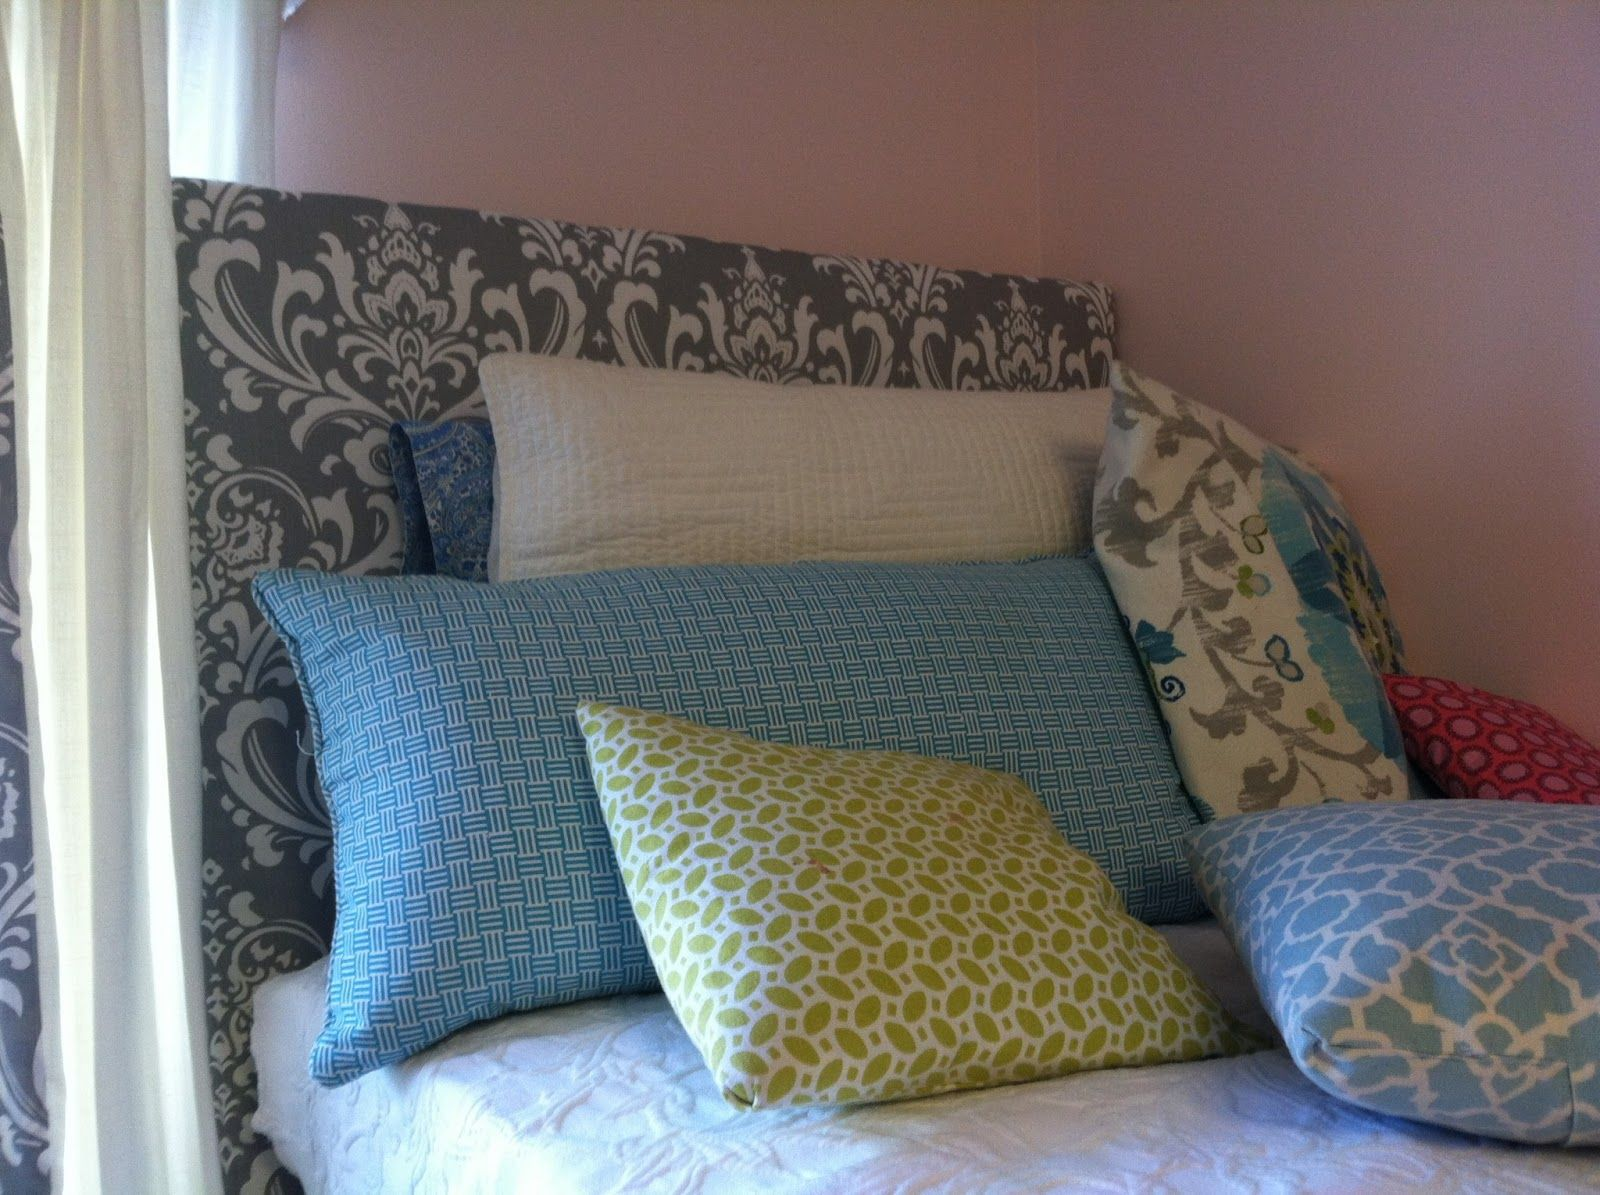 i recently made headboards for my daughter's dorm room bed in her